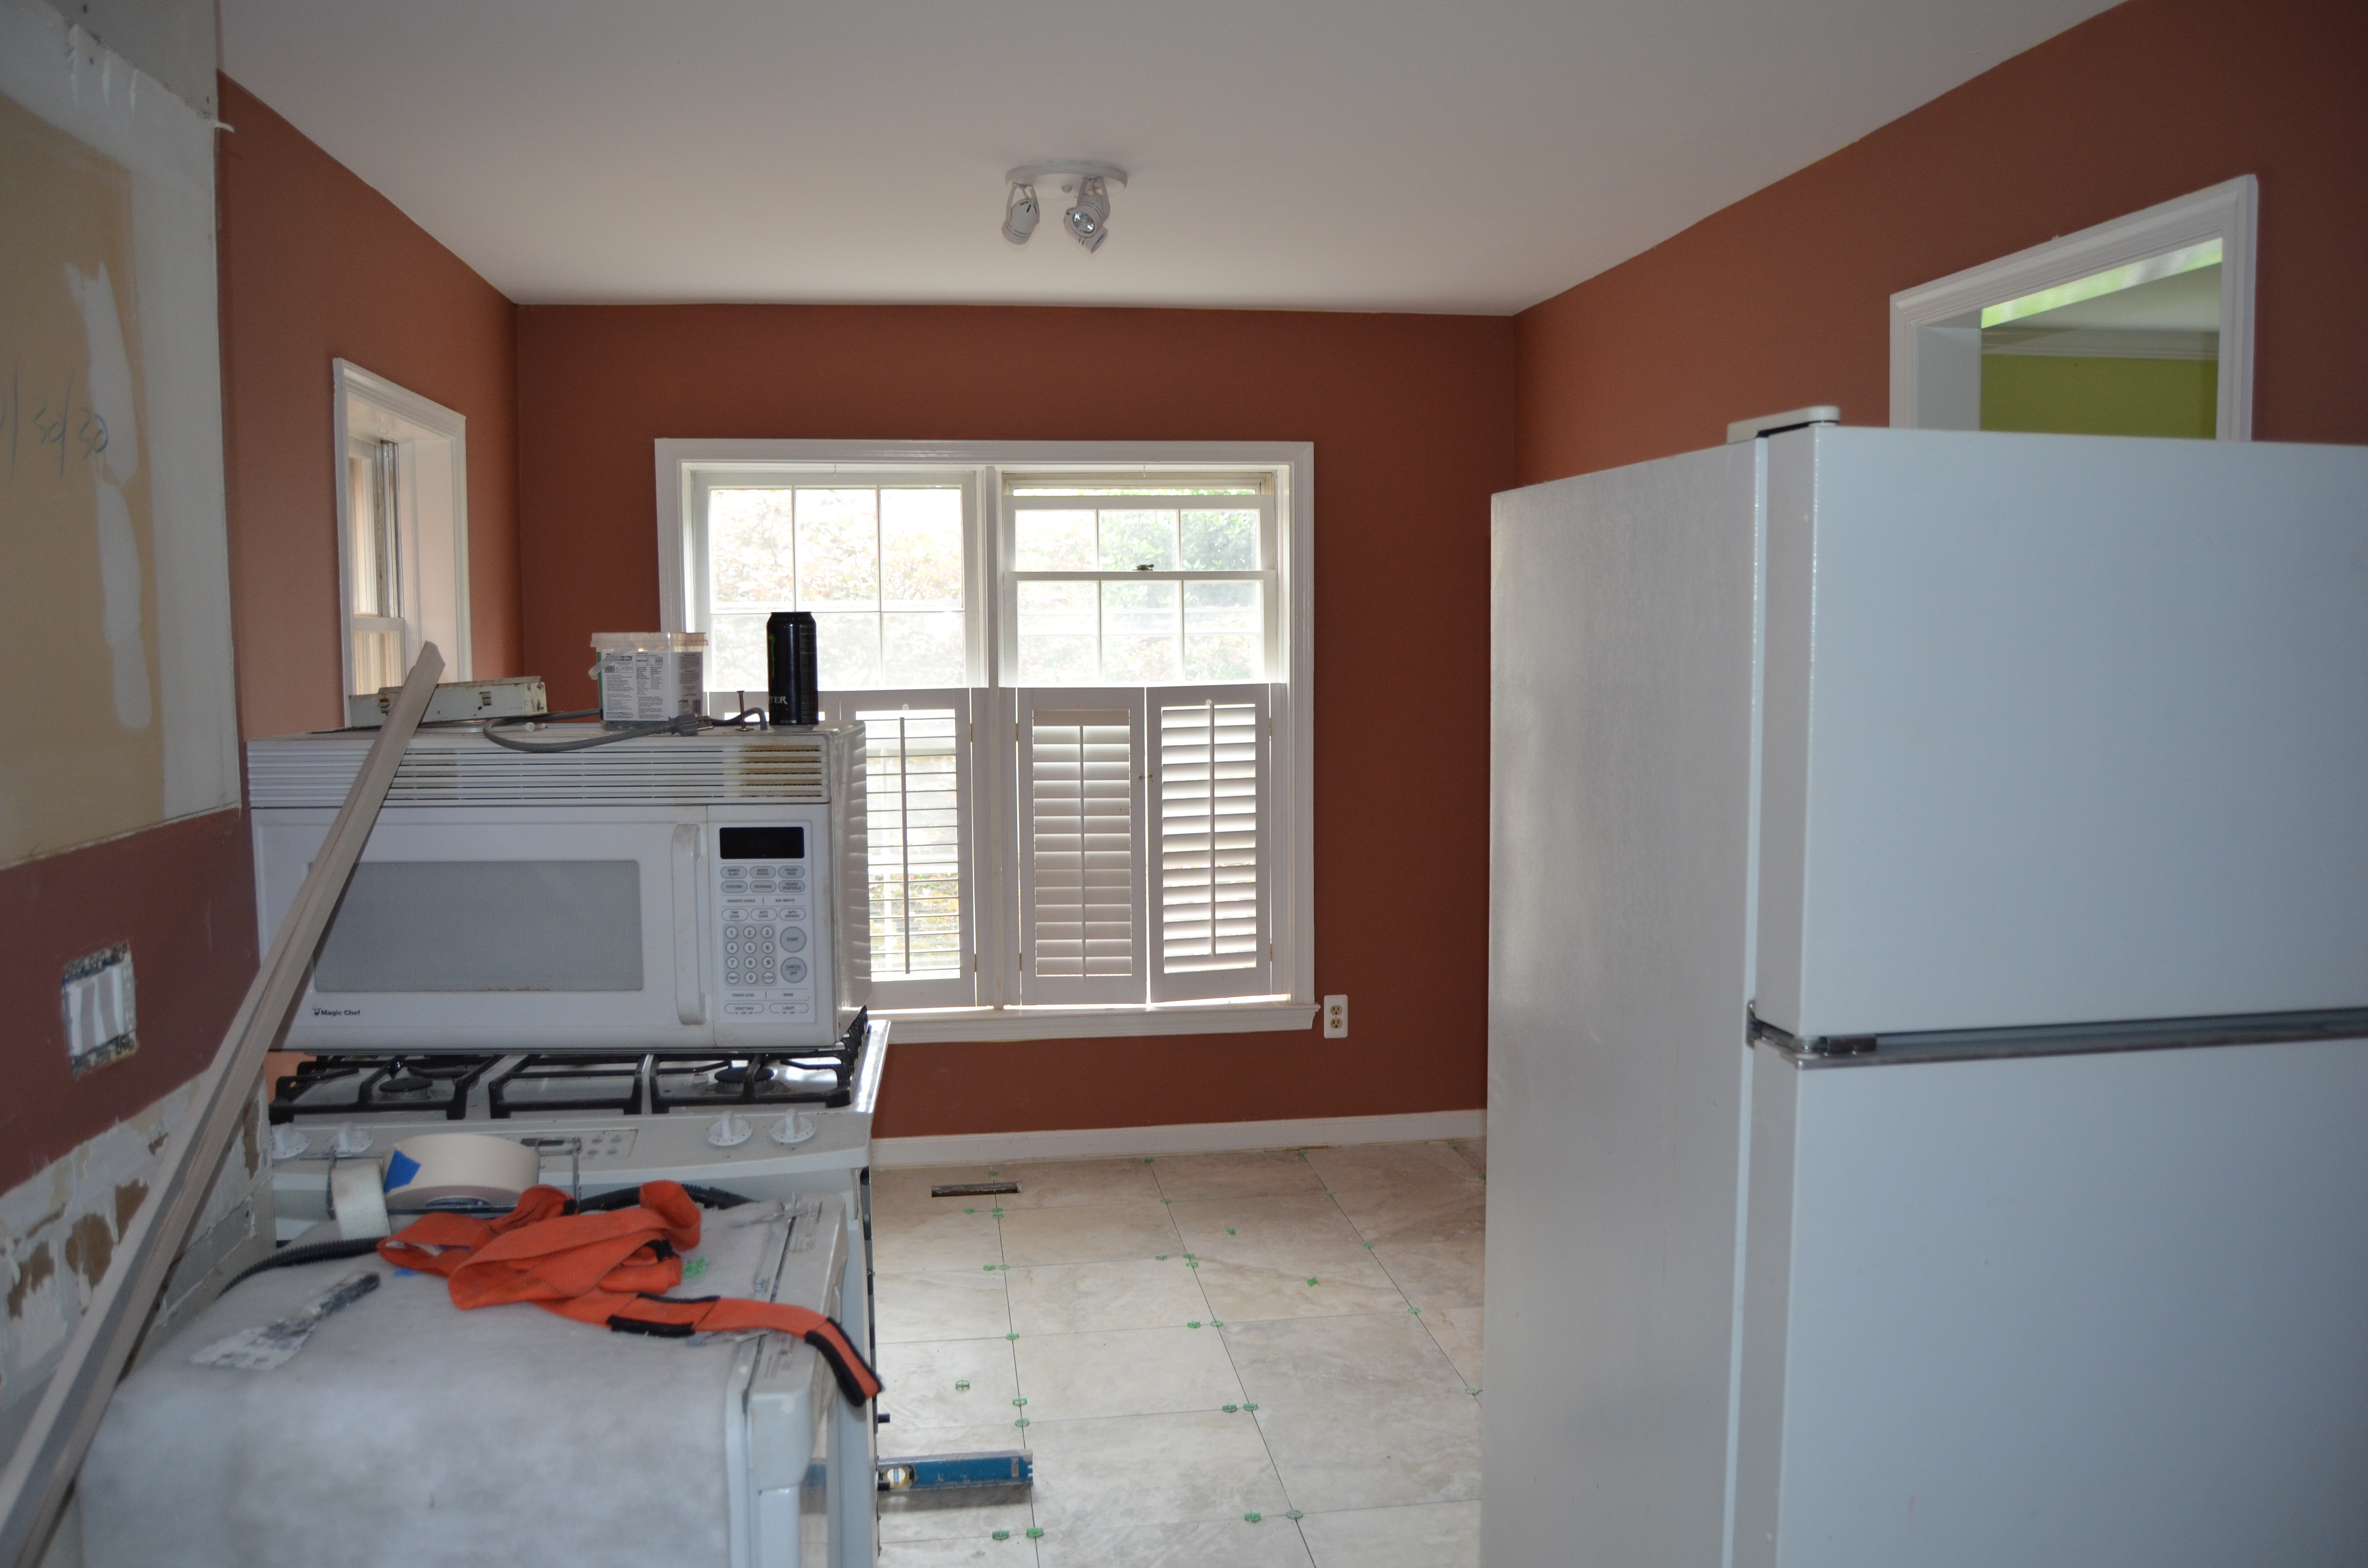 Kitchen Remodel When To Paint Walls